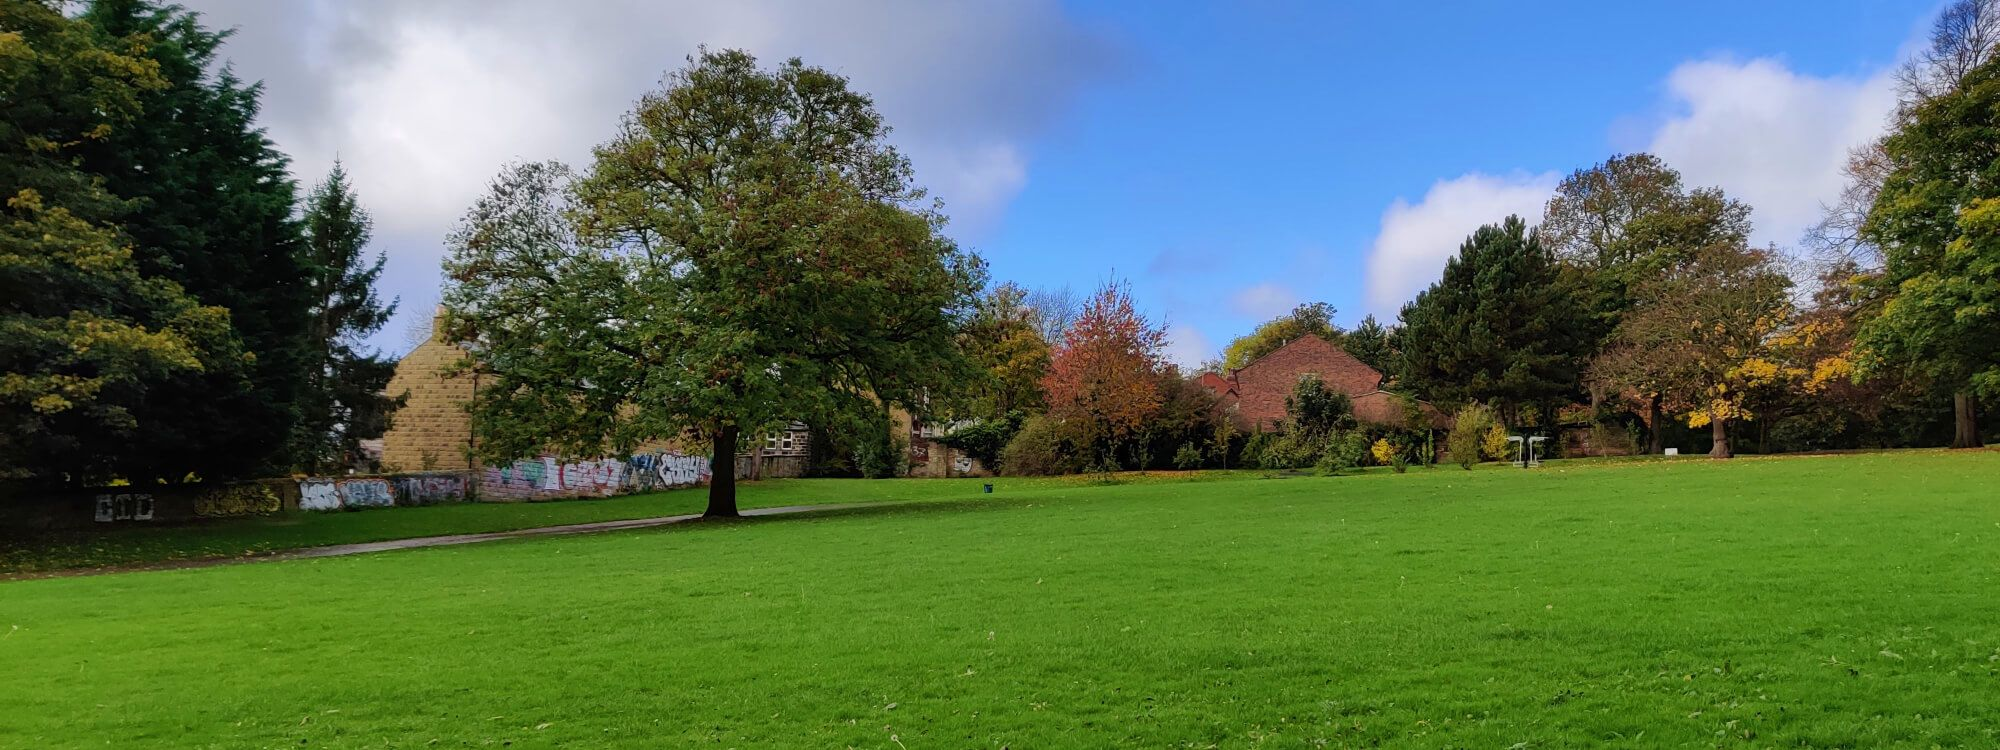 Large green grass field up to a tree on the left at Burley Park.